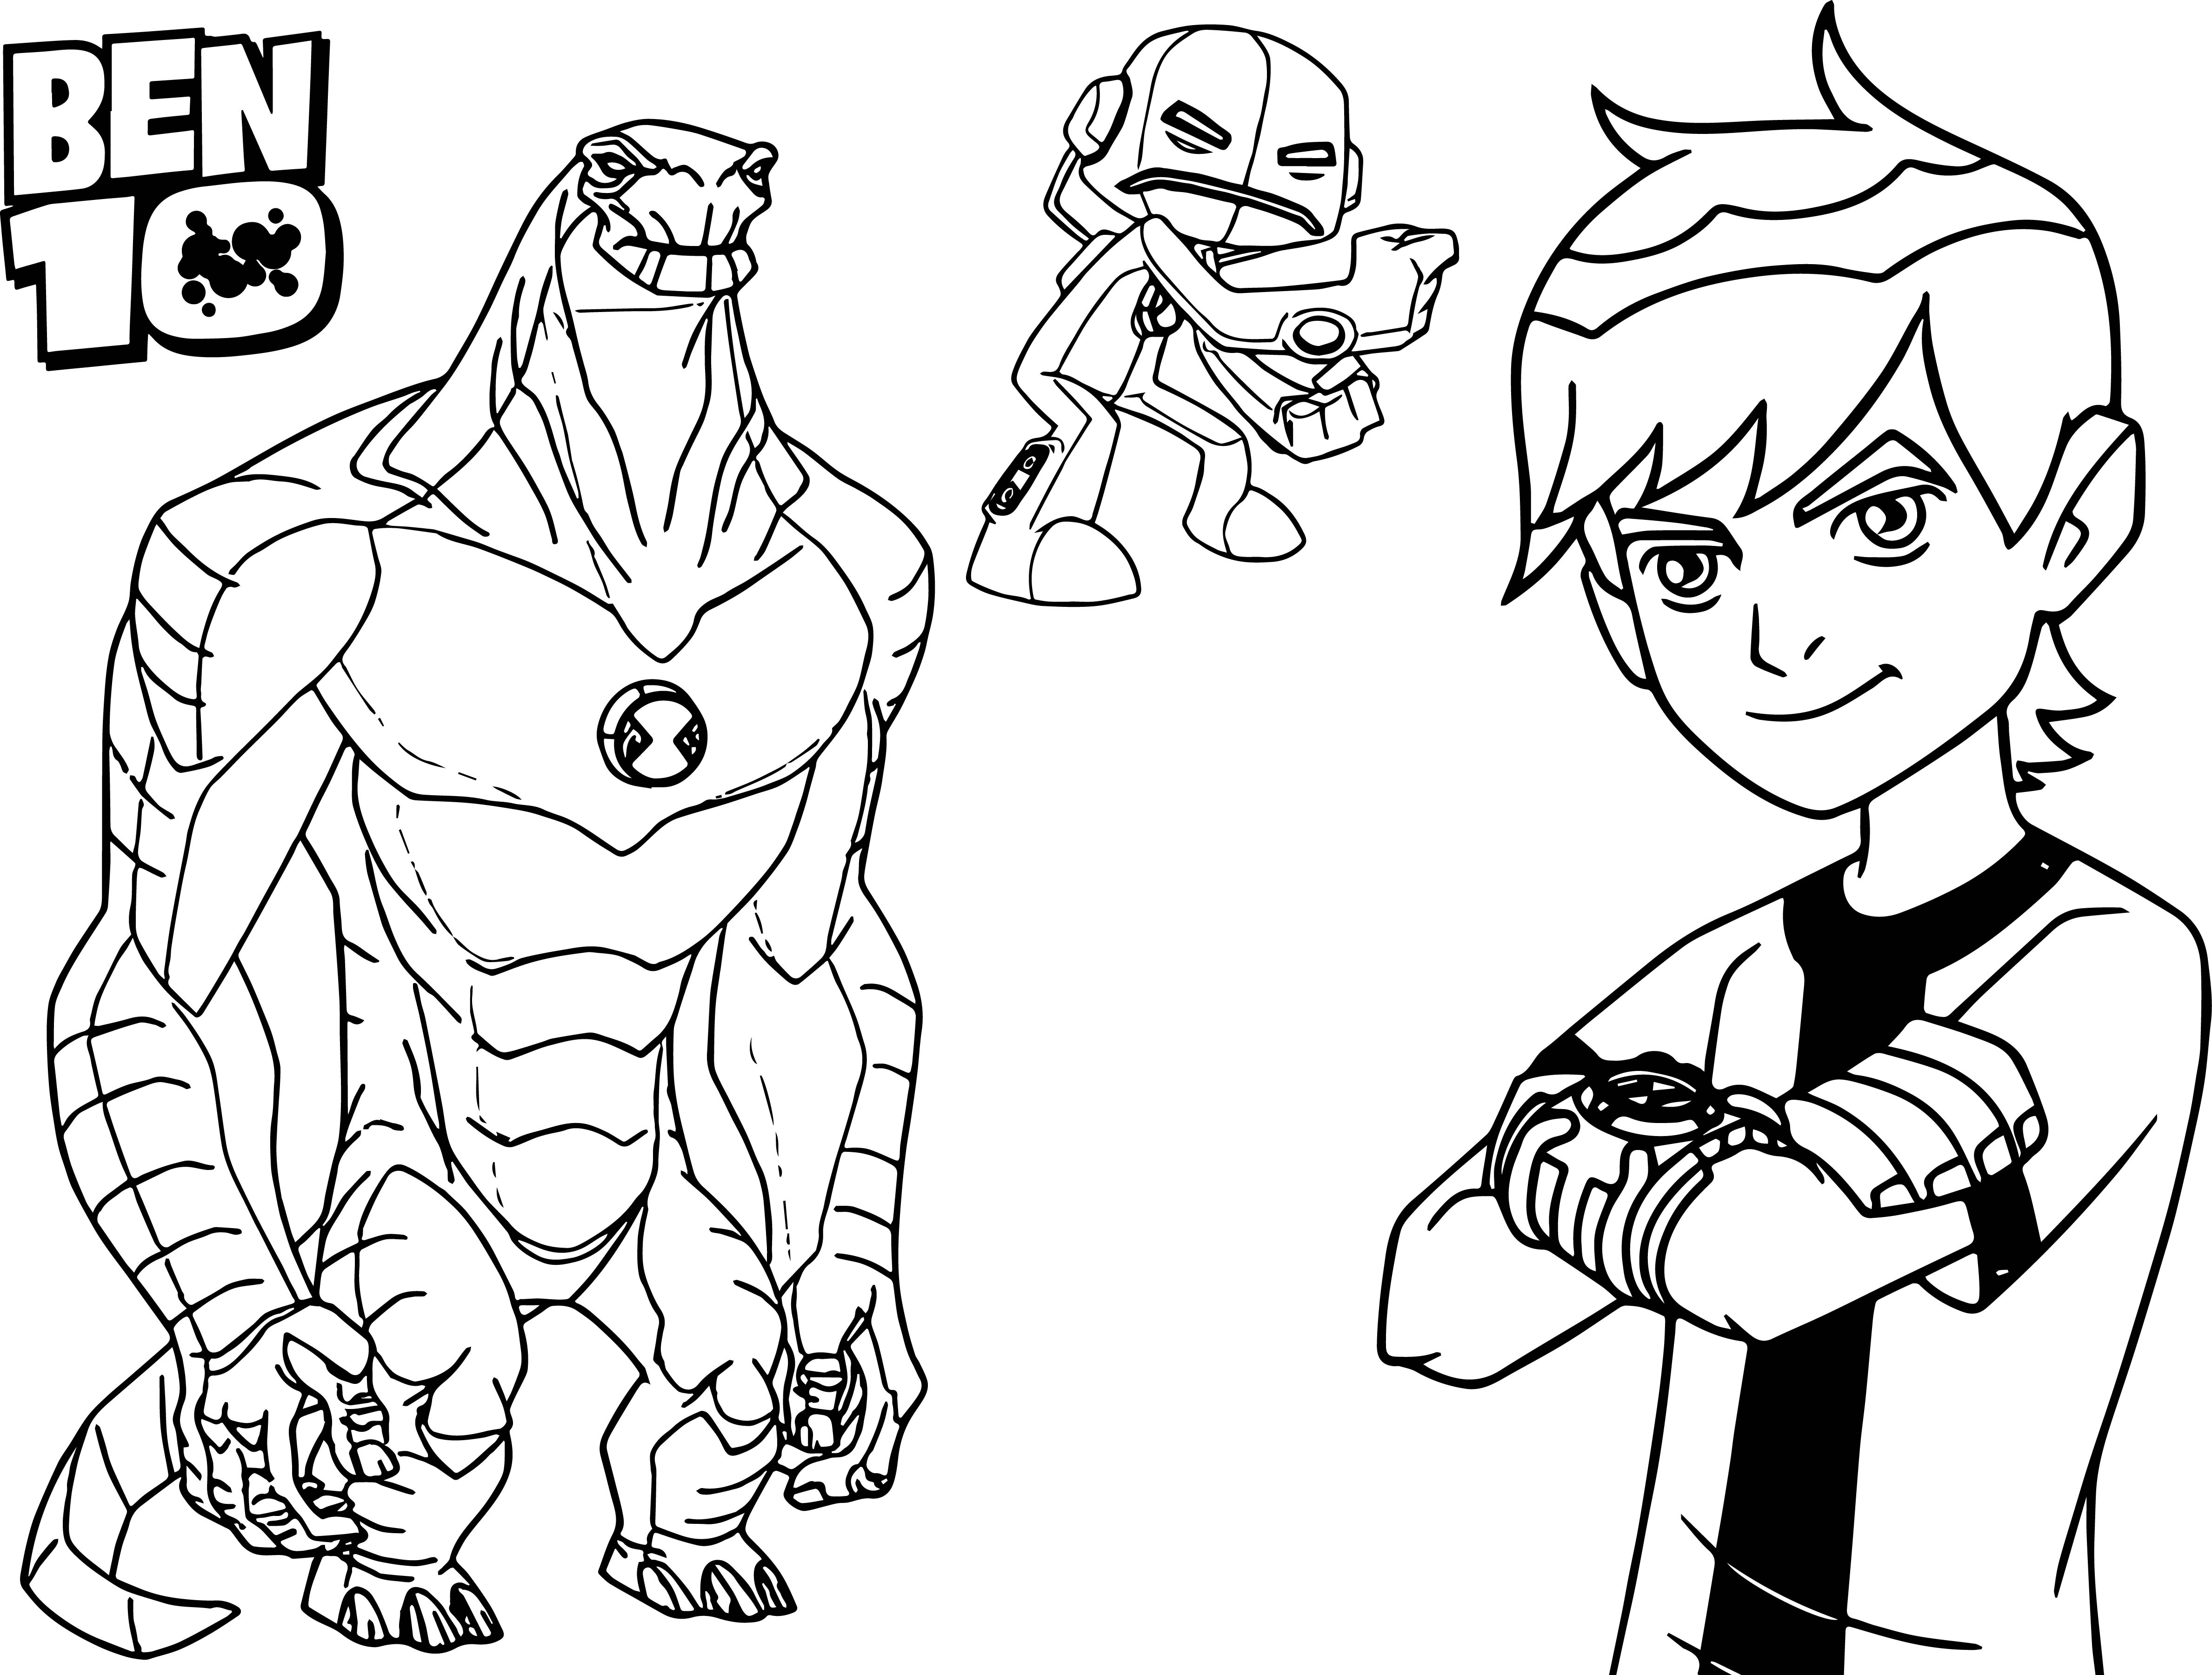 Ben 10 the team coloring page